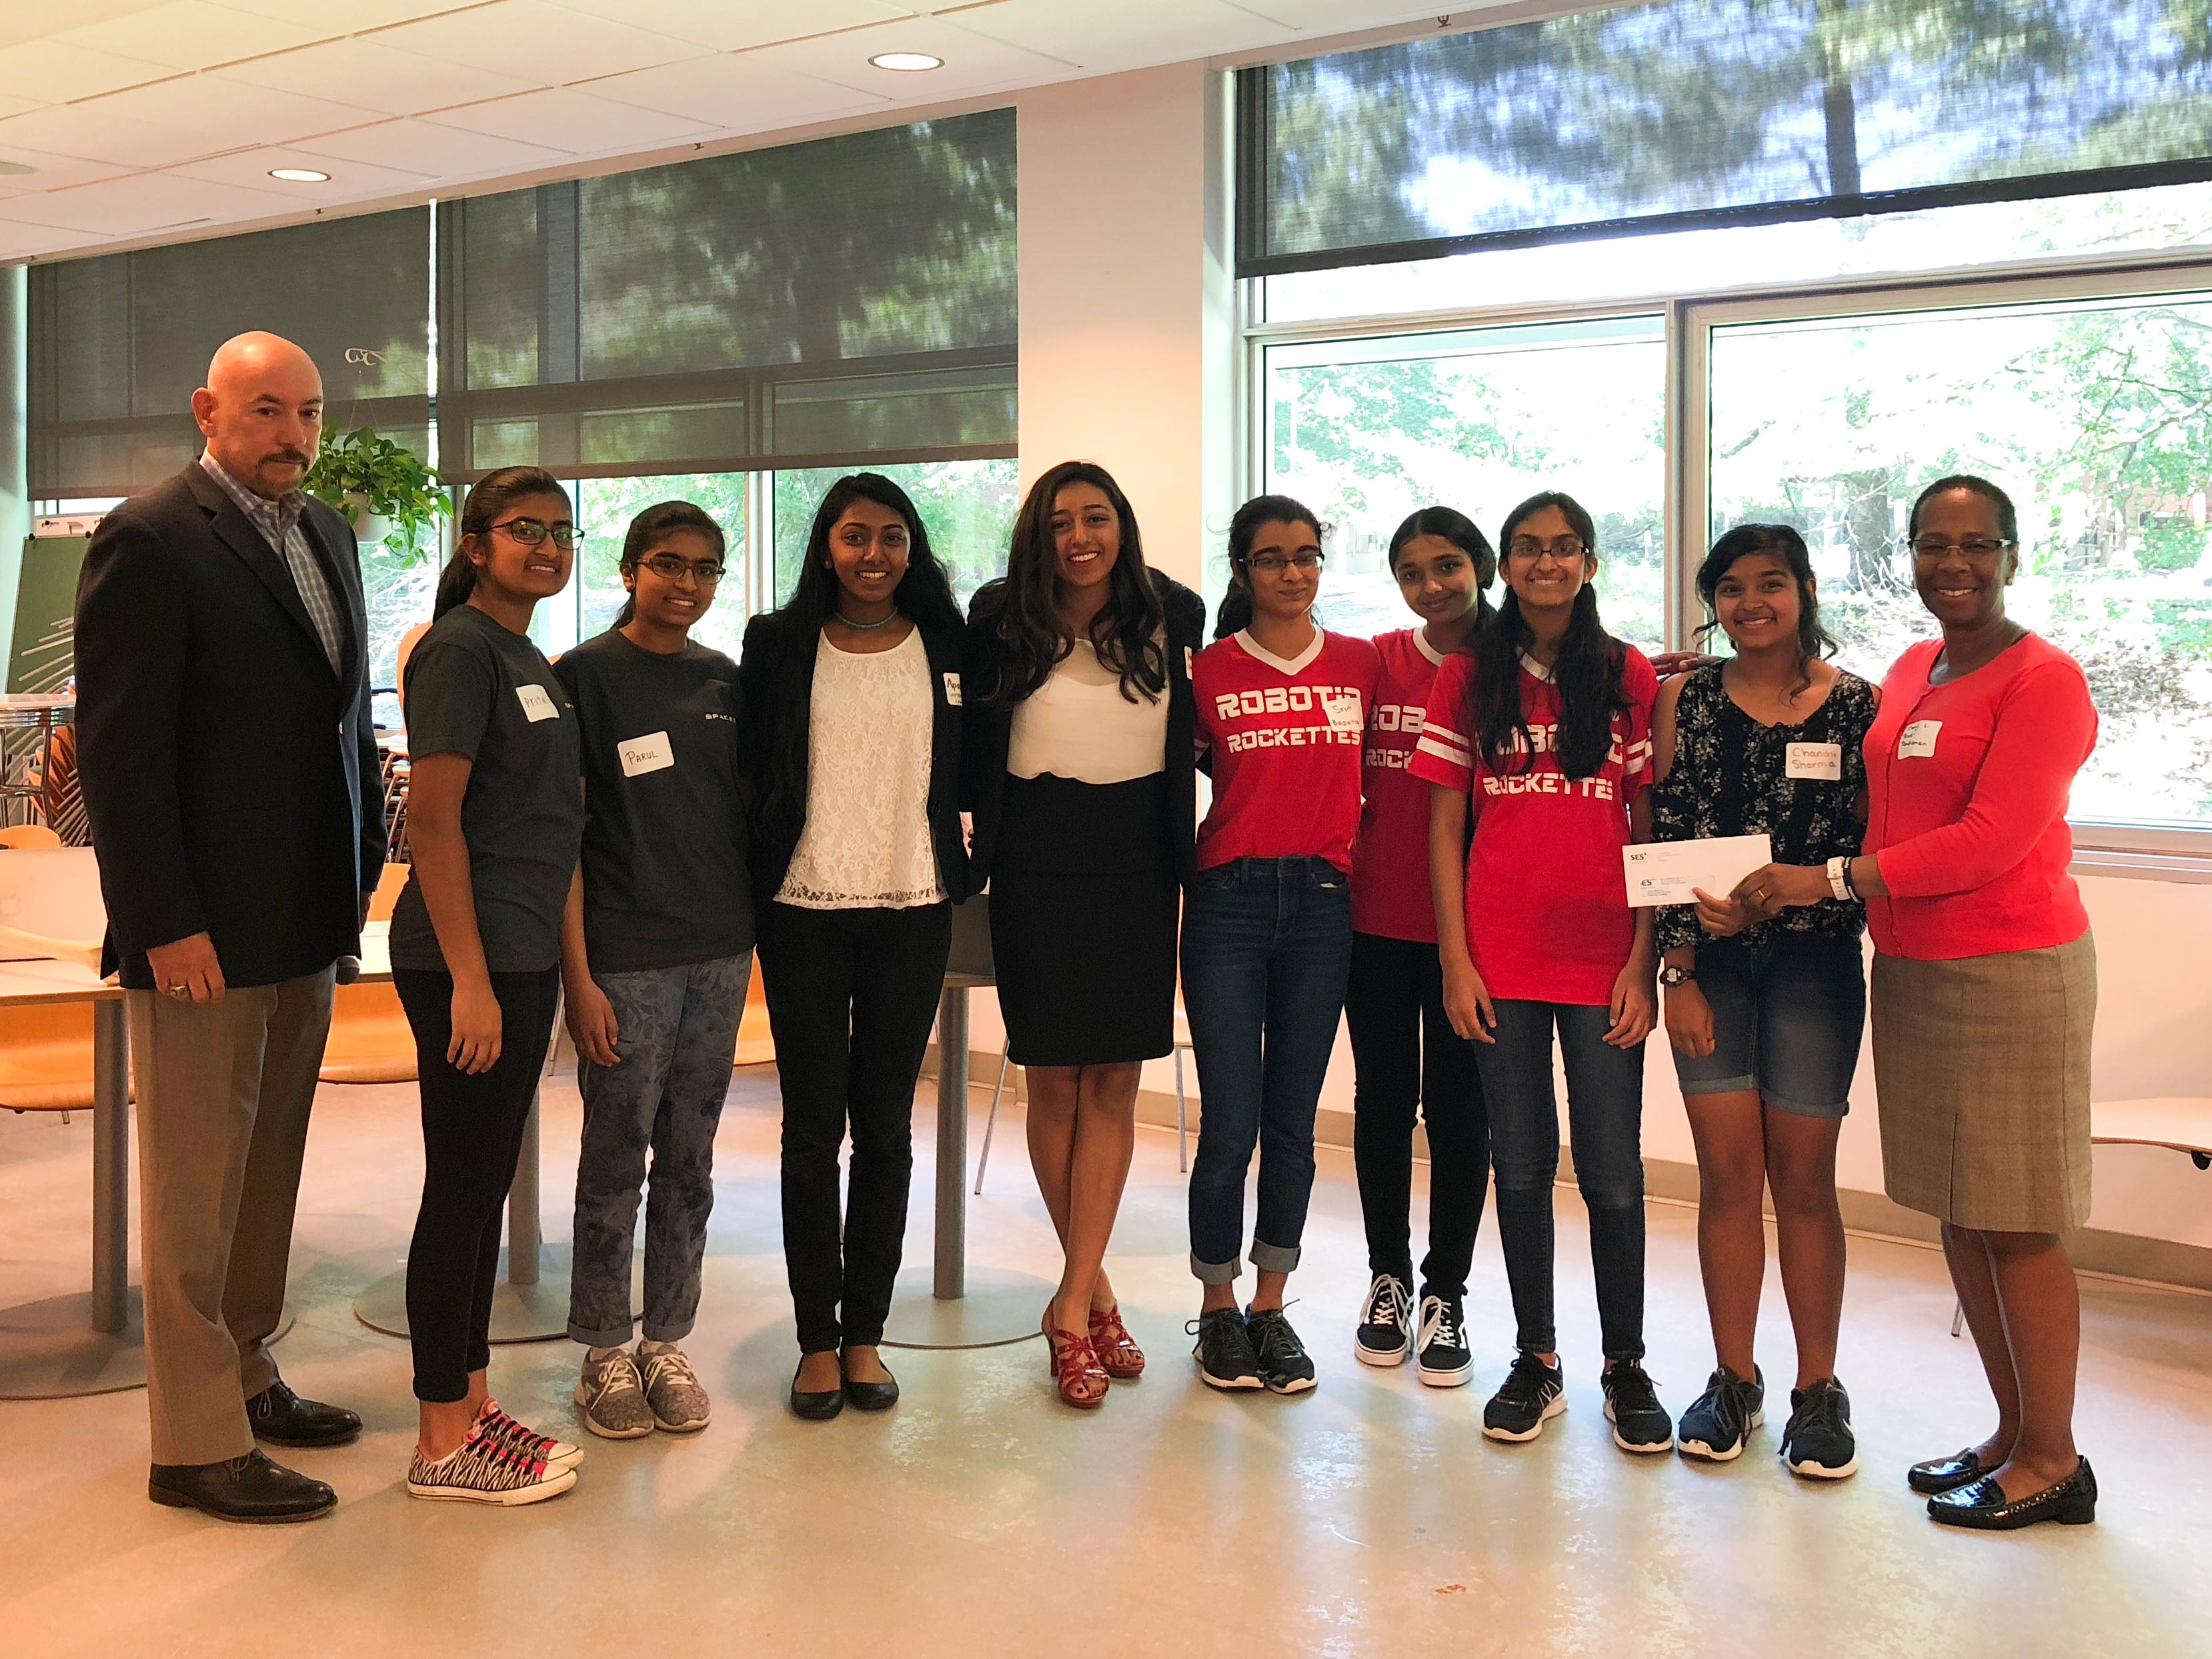 YWCA Princeton All-Girl Competitive Robotics Teams with Douglas Clayton, SVP at SES and Dr. Cheryl Rowe-Rendleman, YWCA Princeton Board President